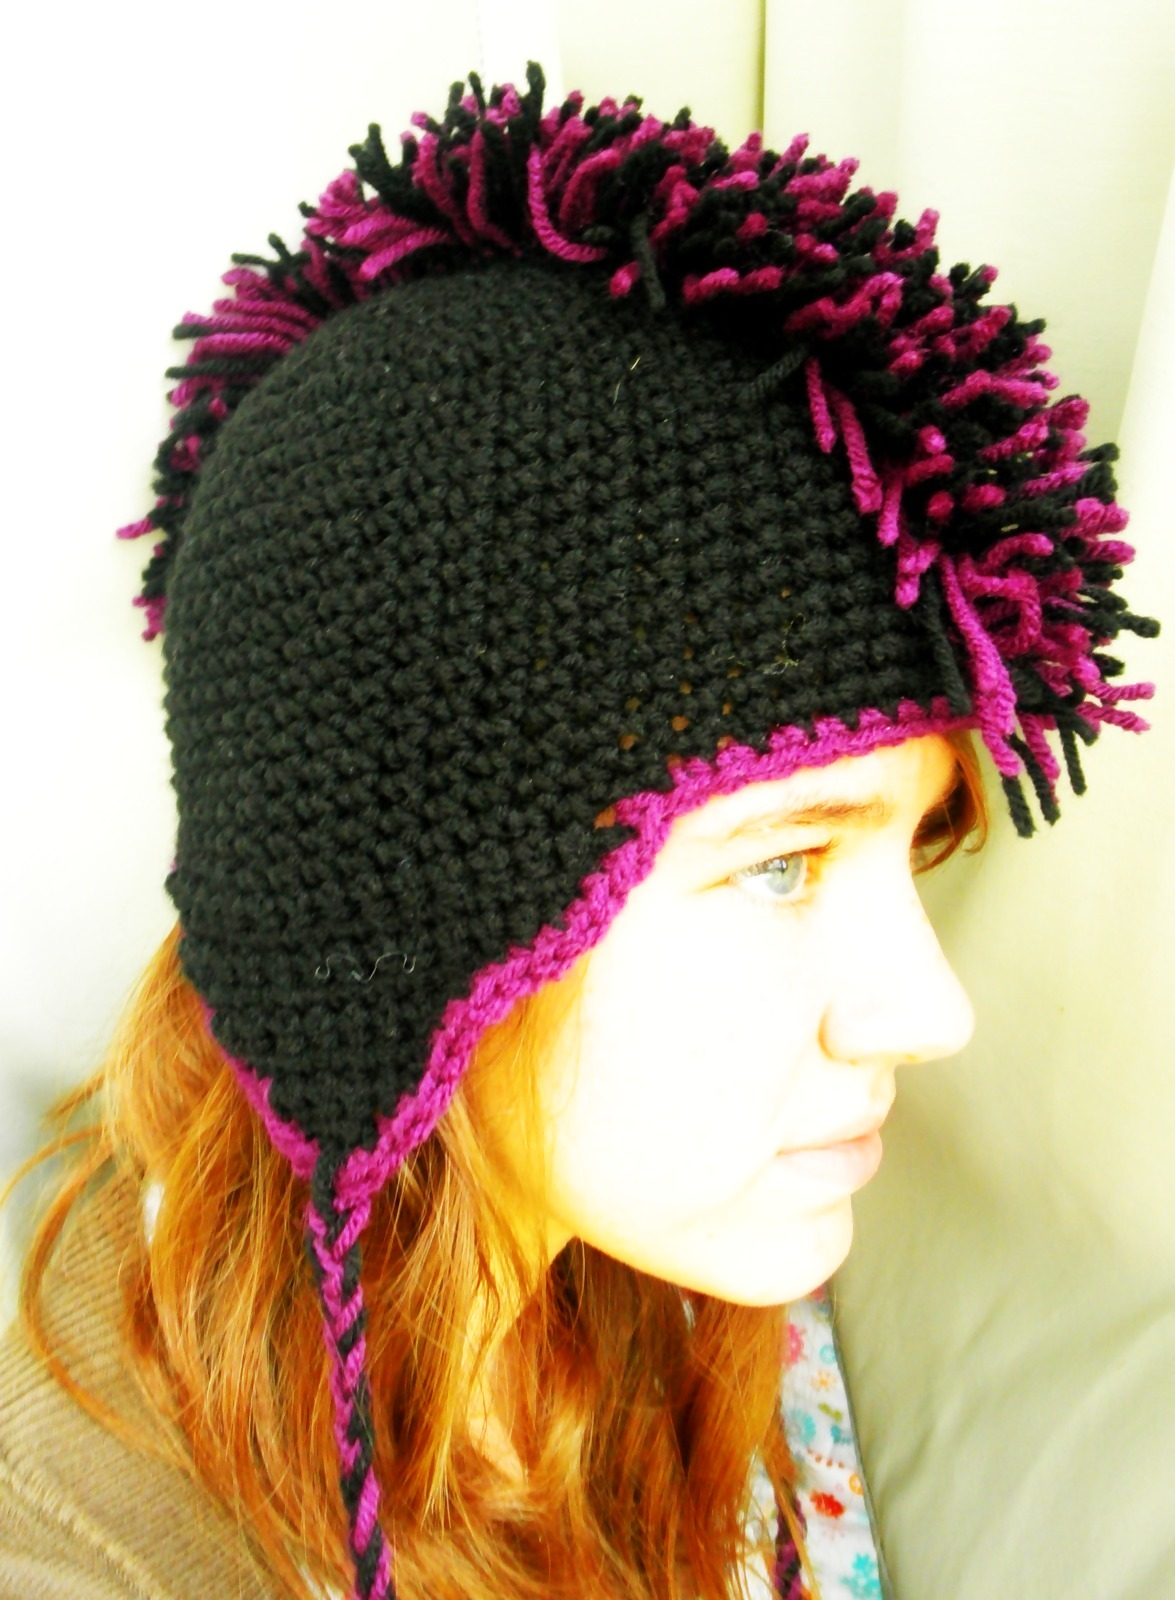 Crochet mohawk hat a mohawk hat crochet on cut out keep crochet mohawk hat a mohawk hat crochet on cut out keep creation by robin s bankloansurffo Gallery